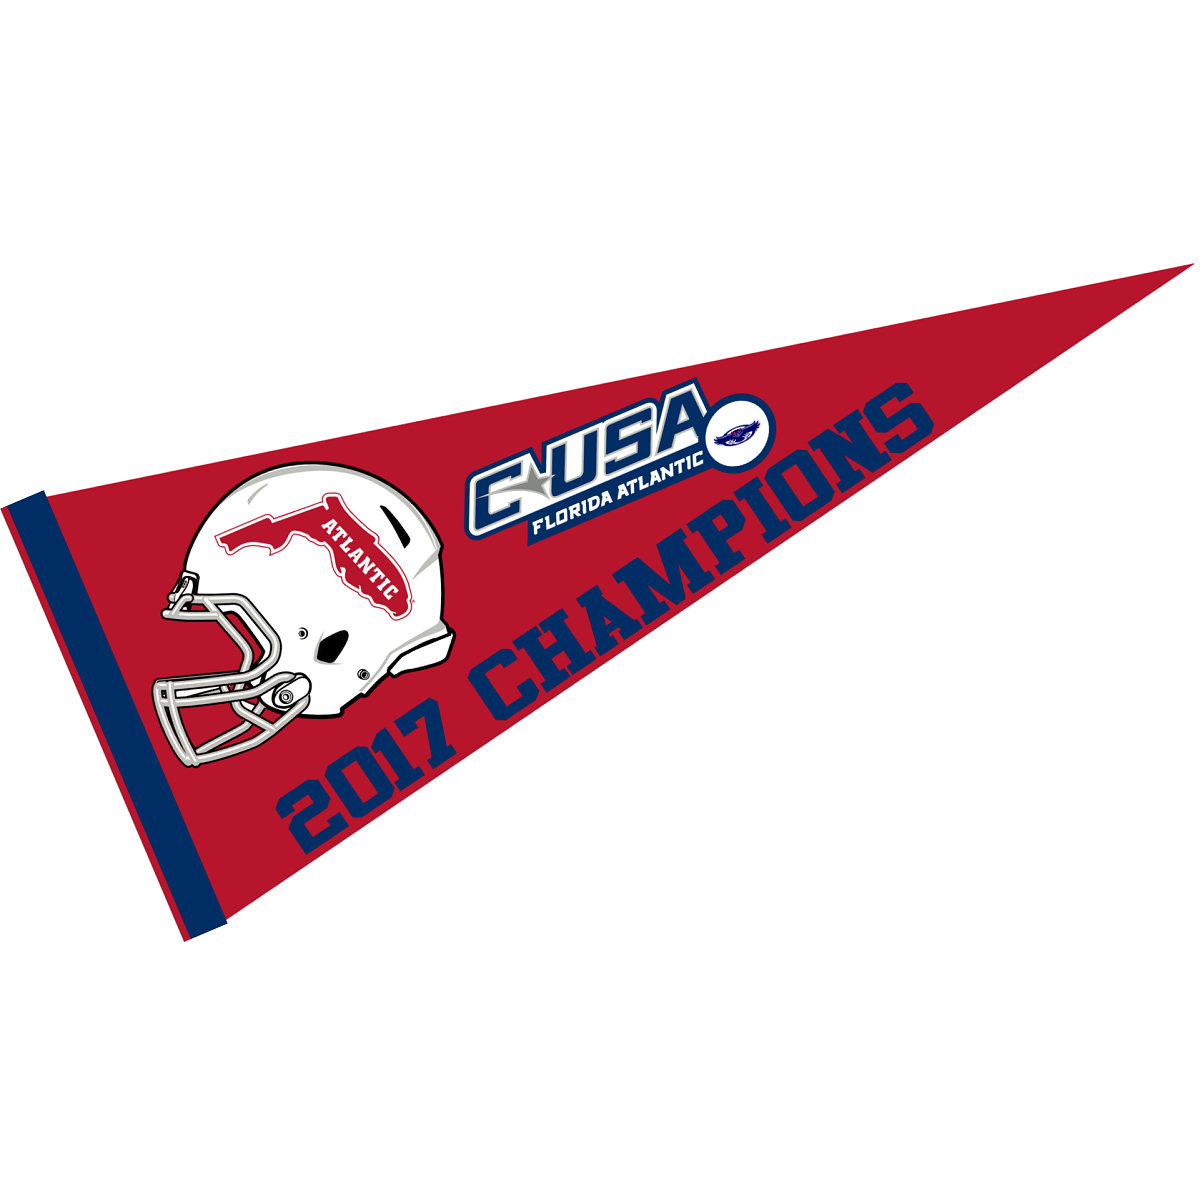 Florida Atlantic Pennant Full Size Felt College Flags and Banners Co